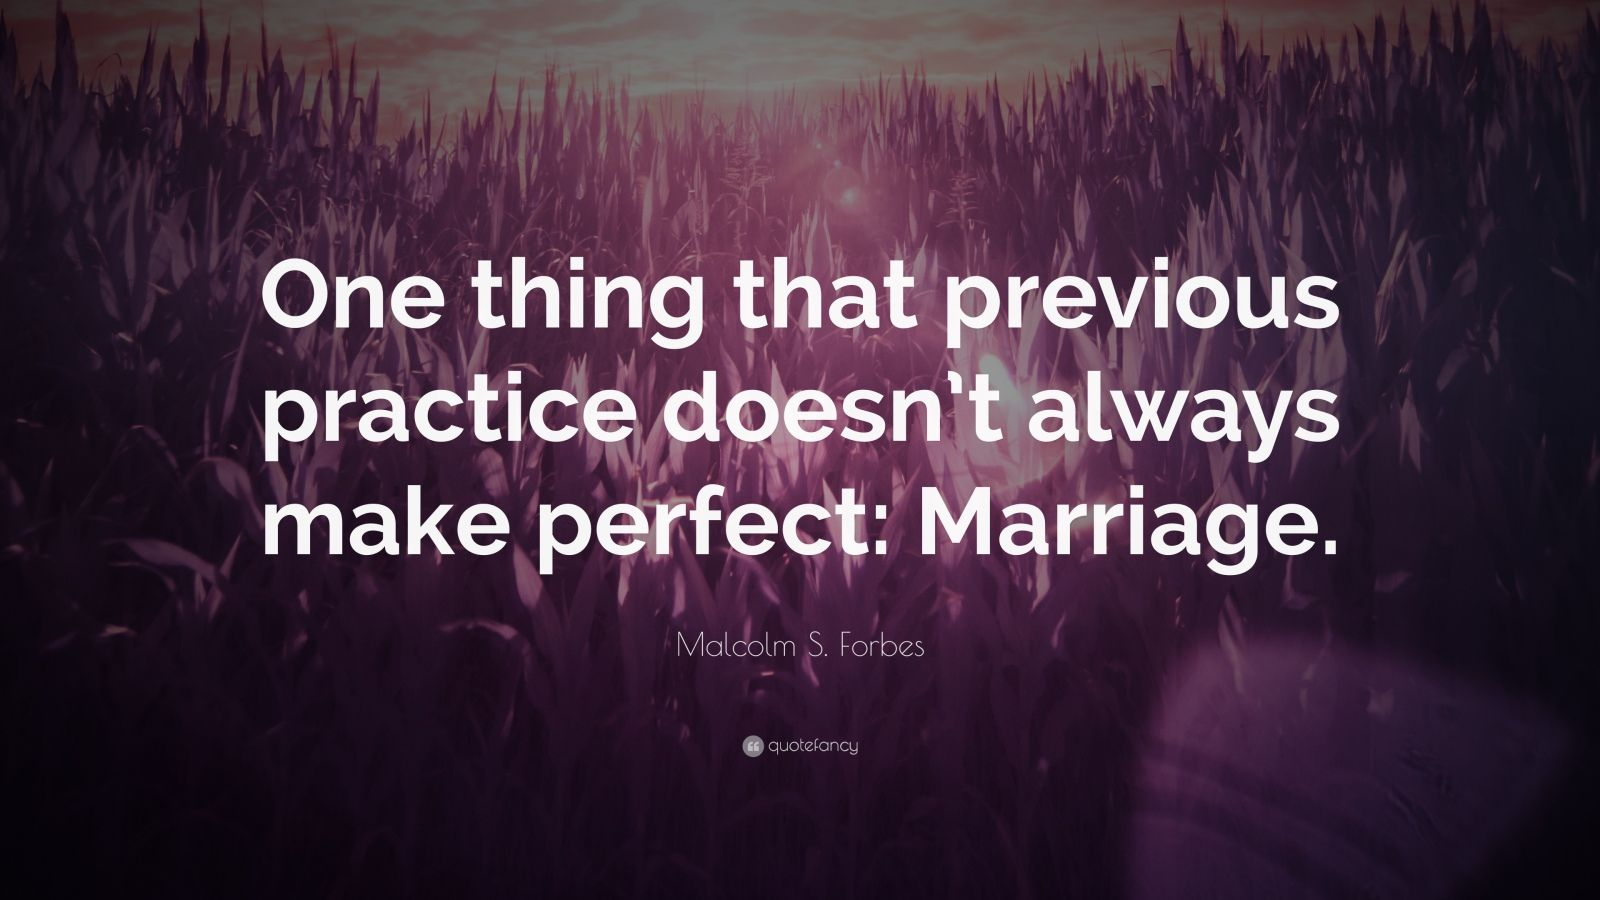 """Malcolm S. Forbes Quote: """"One thing that previous practice doesn't always make perfect: Marriage."""""""